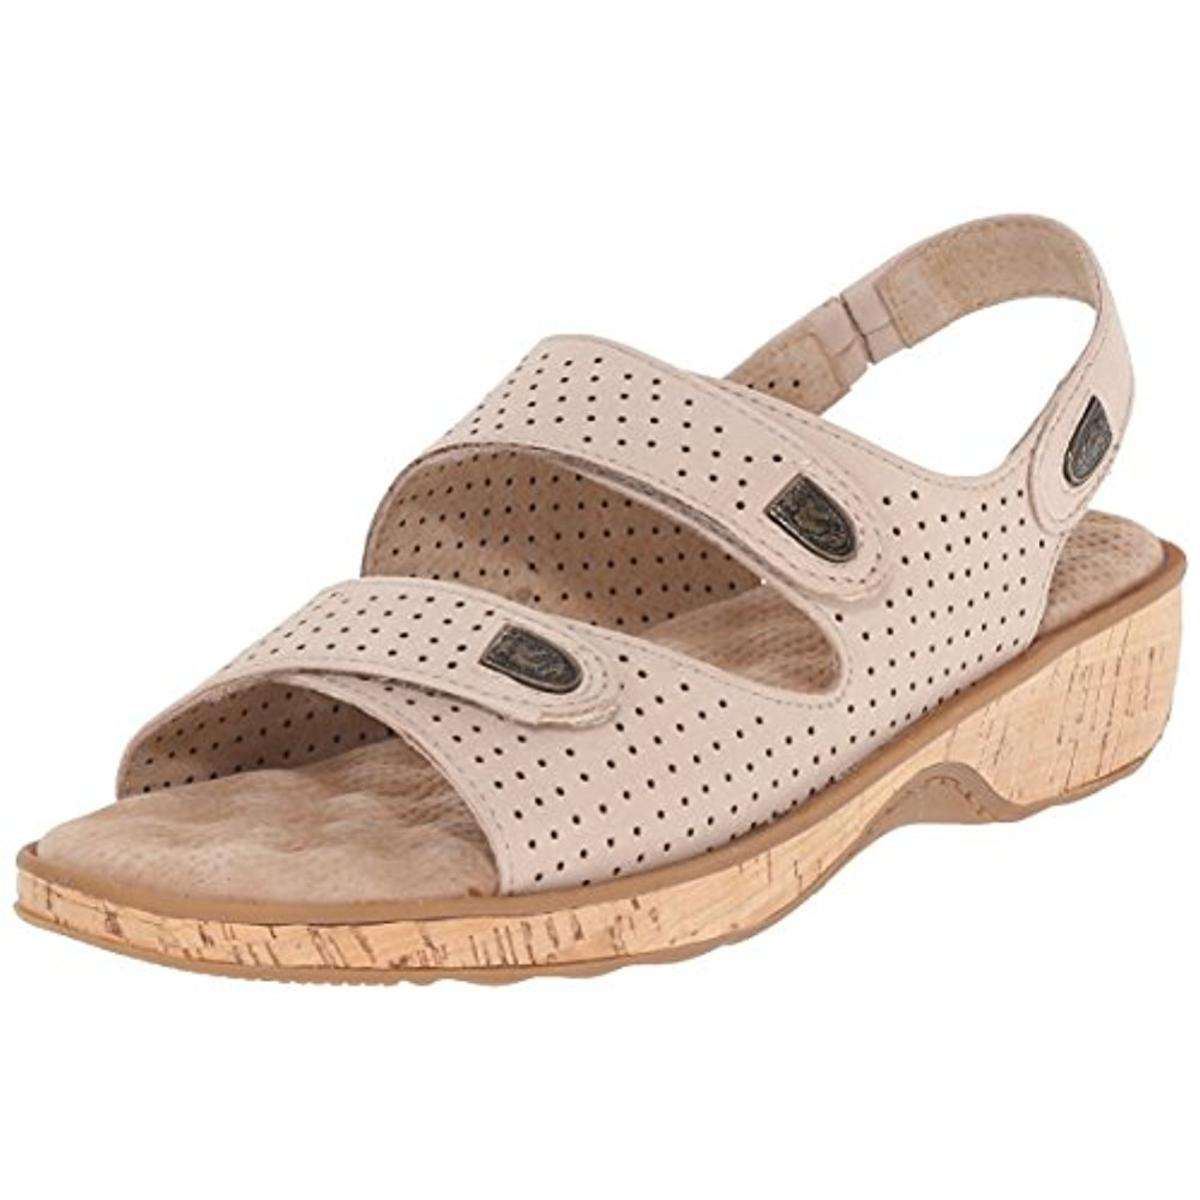 SoftWalk Womens Bolivia Leather Sport Sandals by SoftWalk